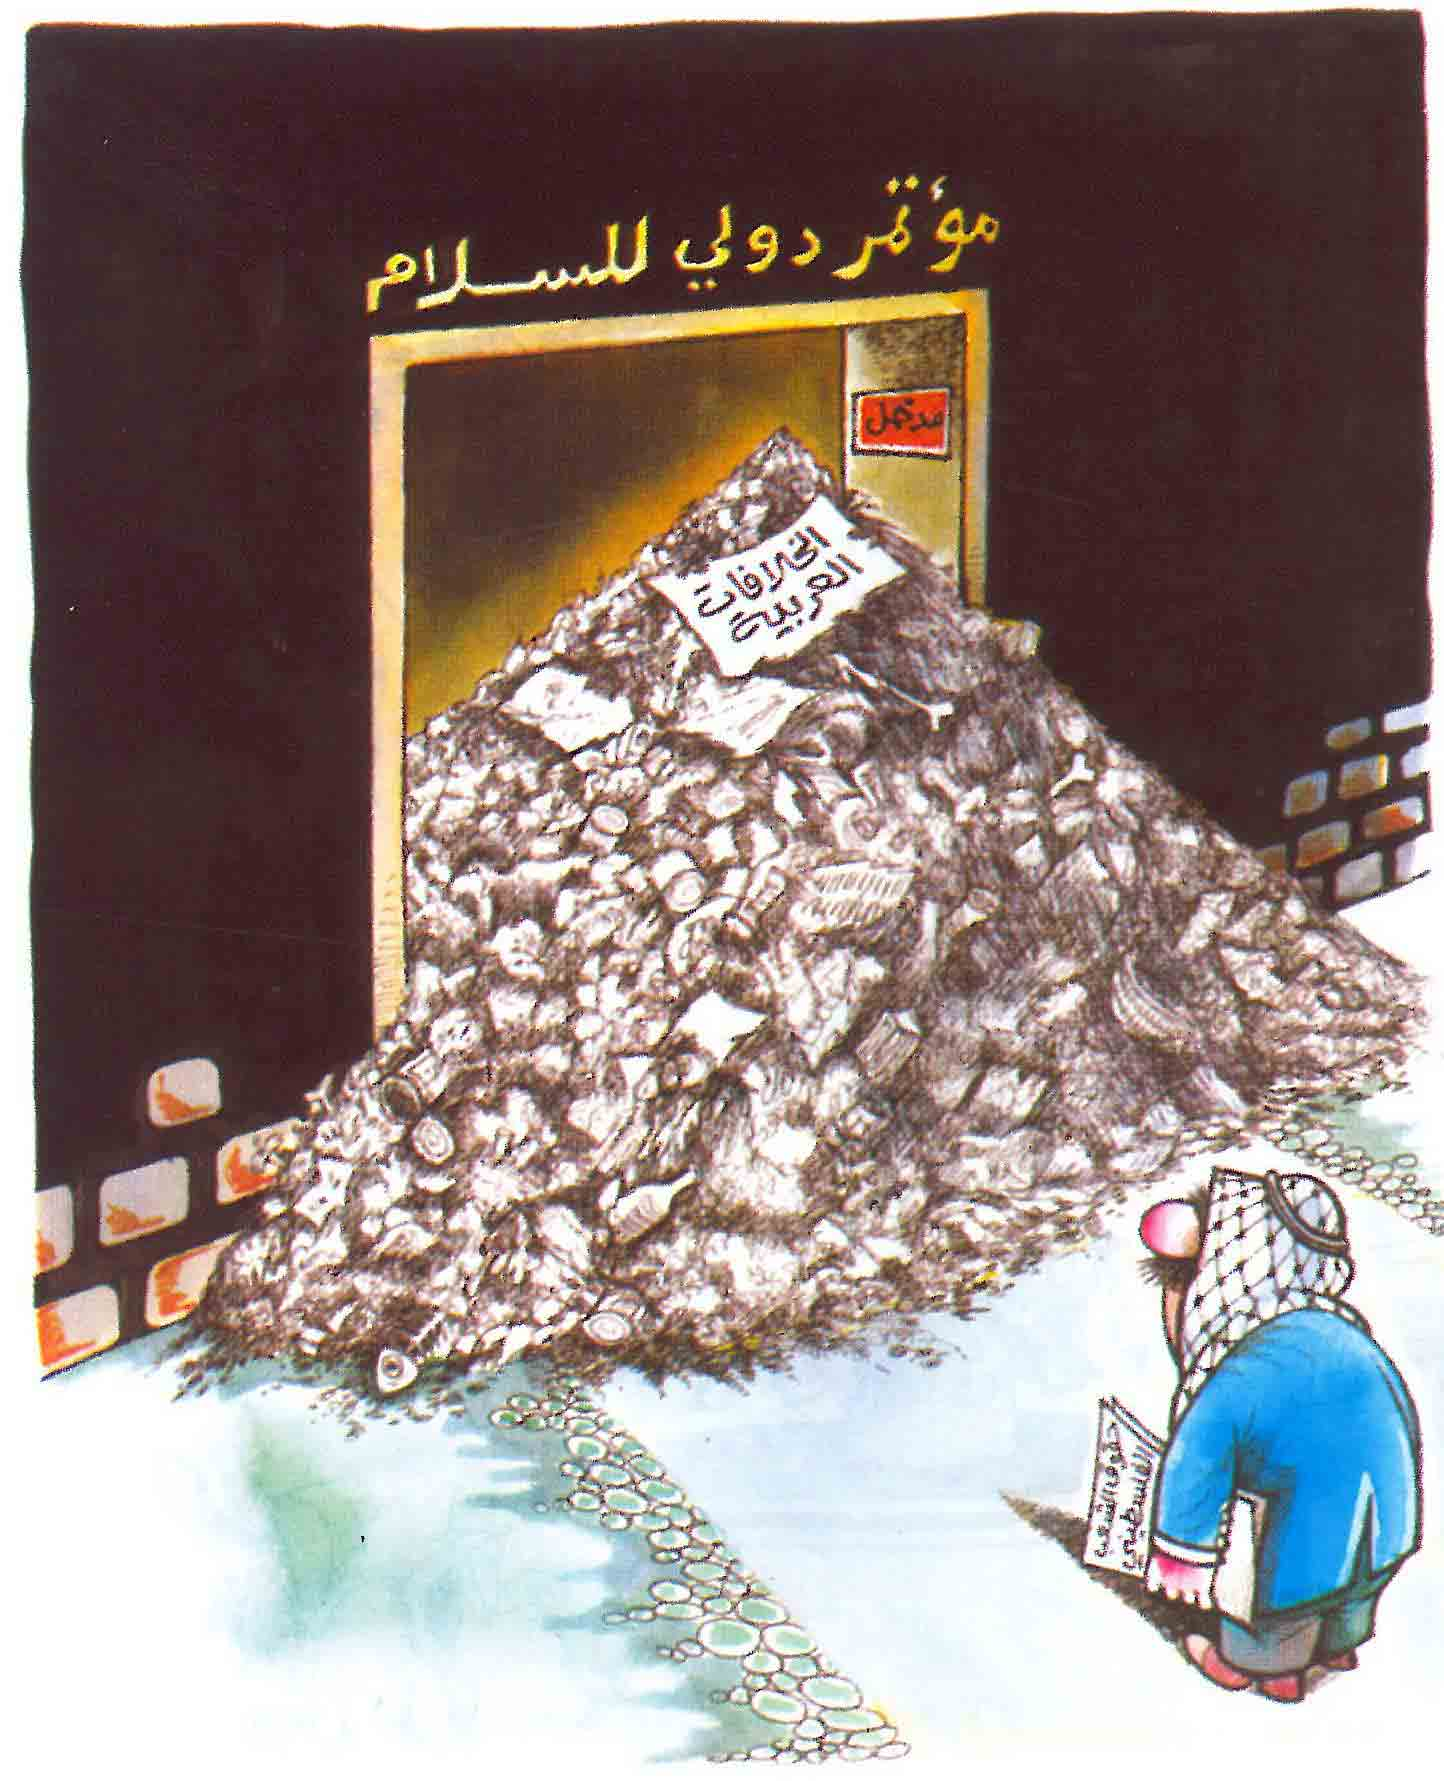 caricature_in_the_arab_countries3.jpg